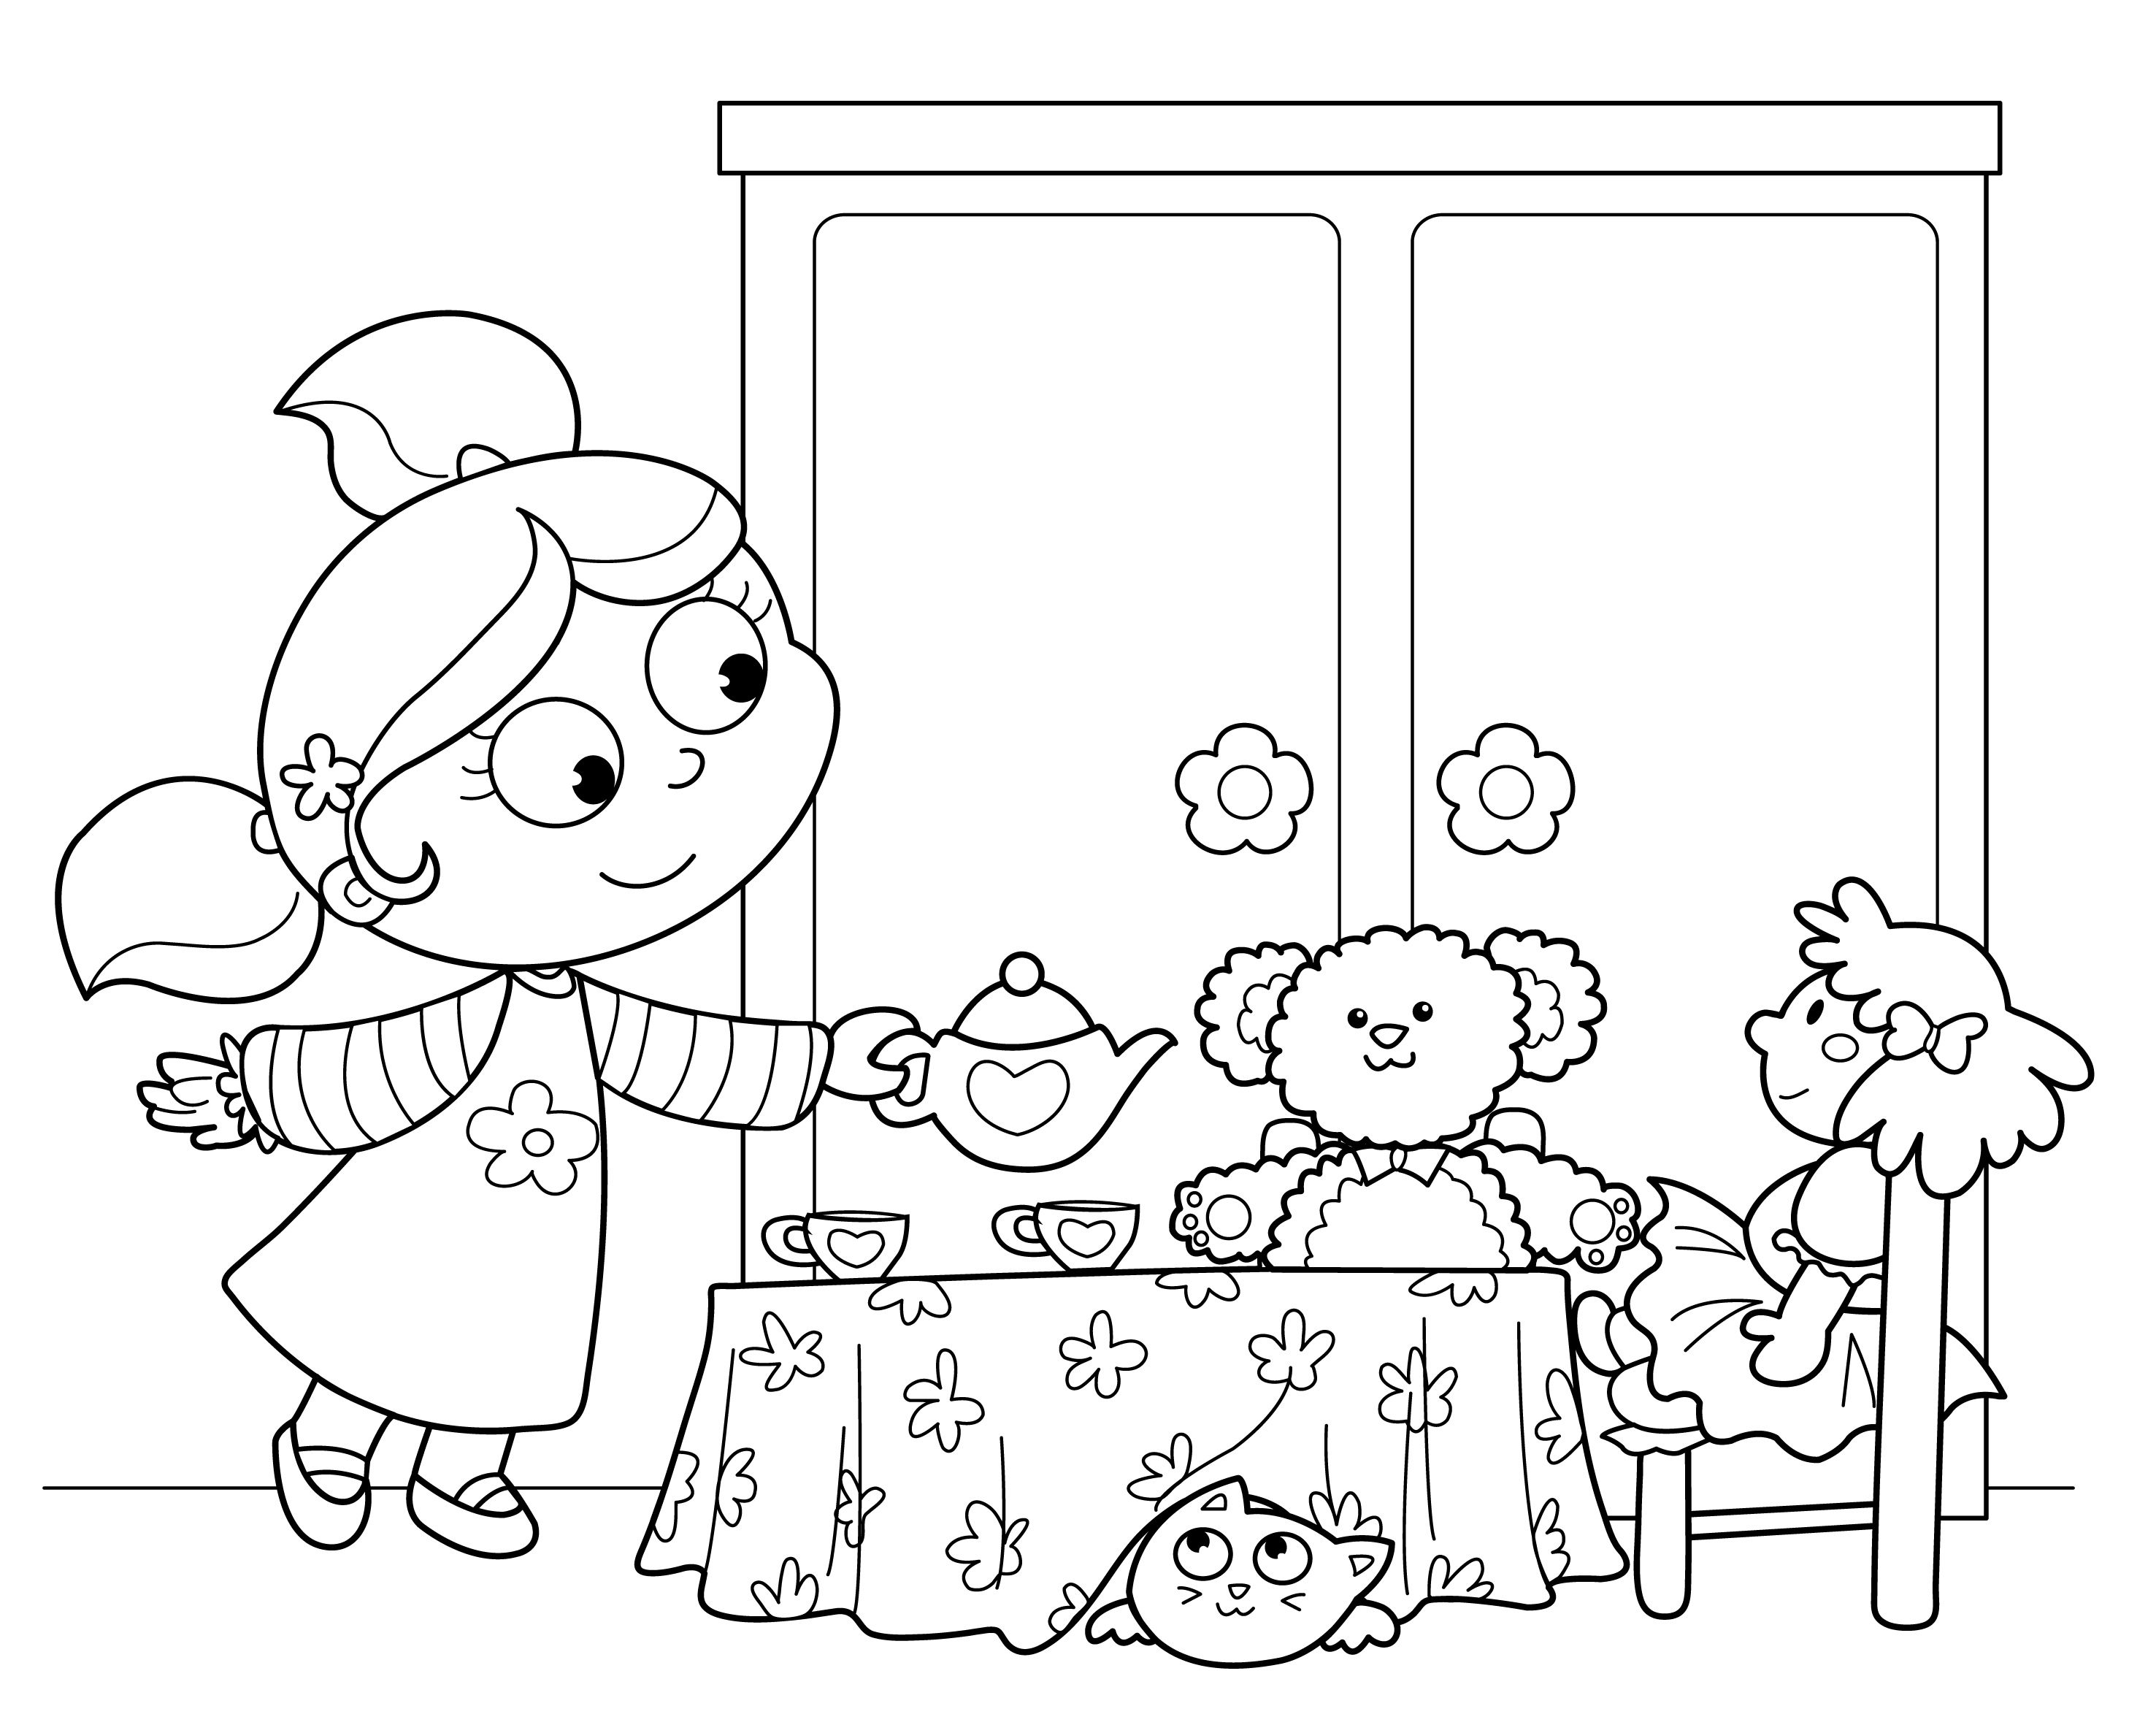 american girl tea party ideas kids tea party birthday coloring page kiboomu kids songs - Princess Tea Party Coloring Pages